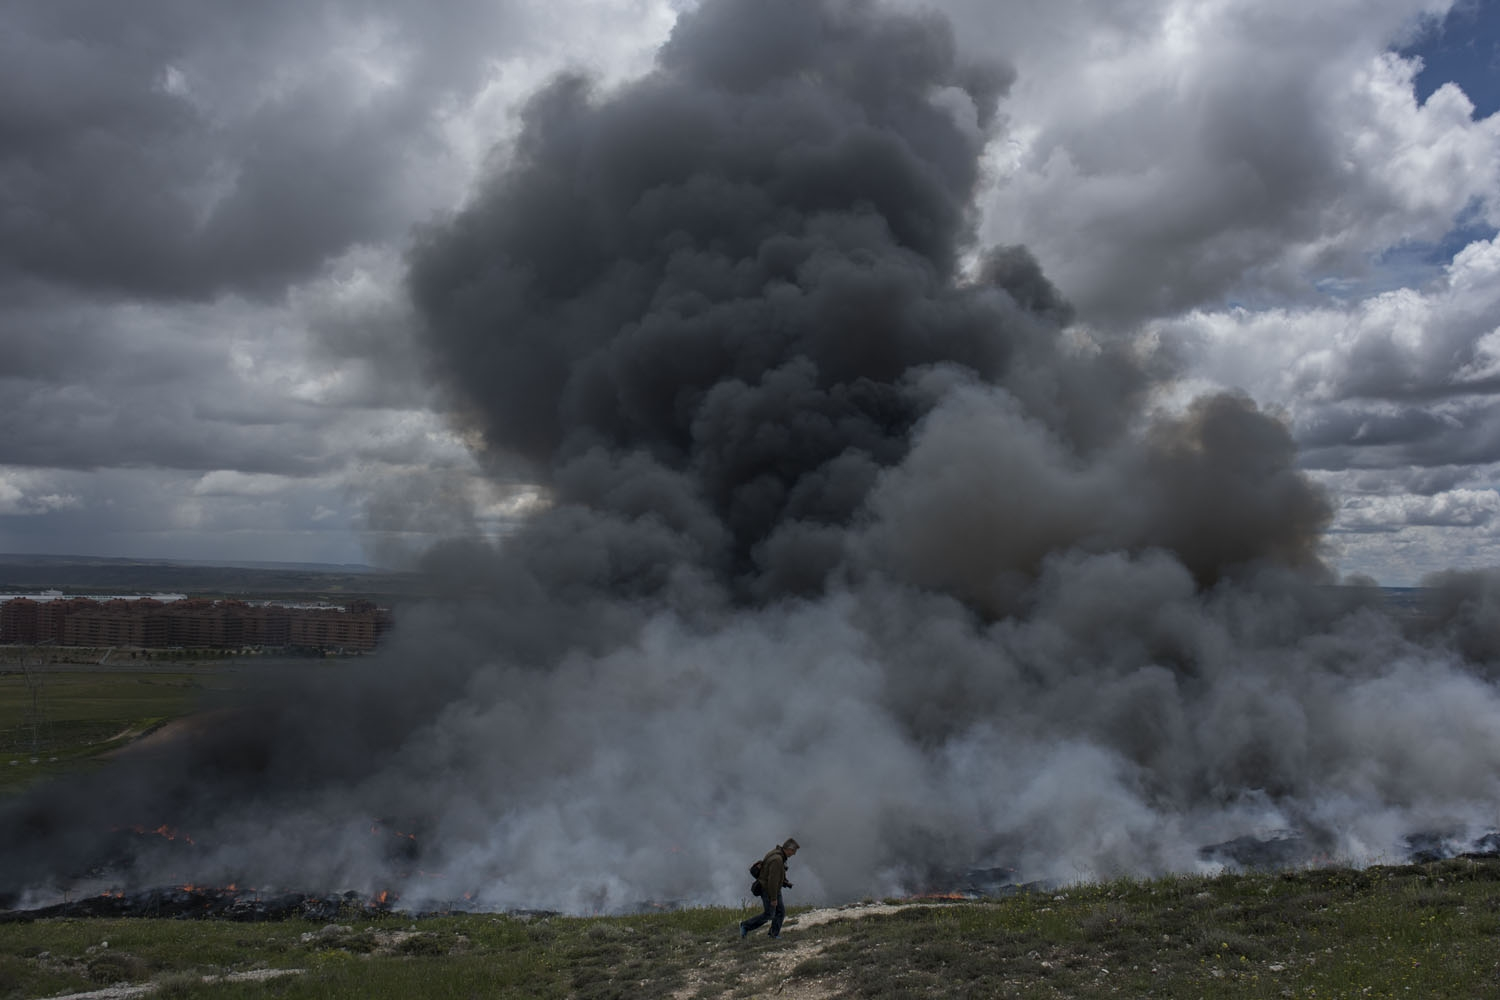 A man walks past a pile of tyres burning in an uncontrolled dump near the town of Sesena, after a fire brokeout early on May 13, 2016